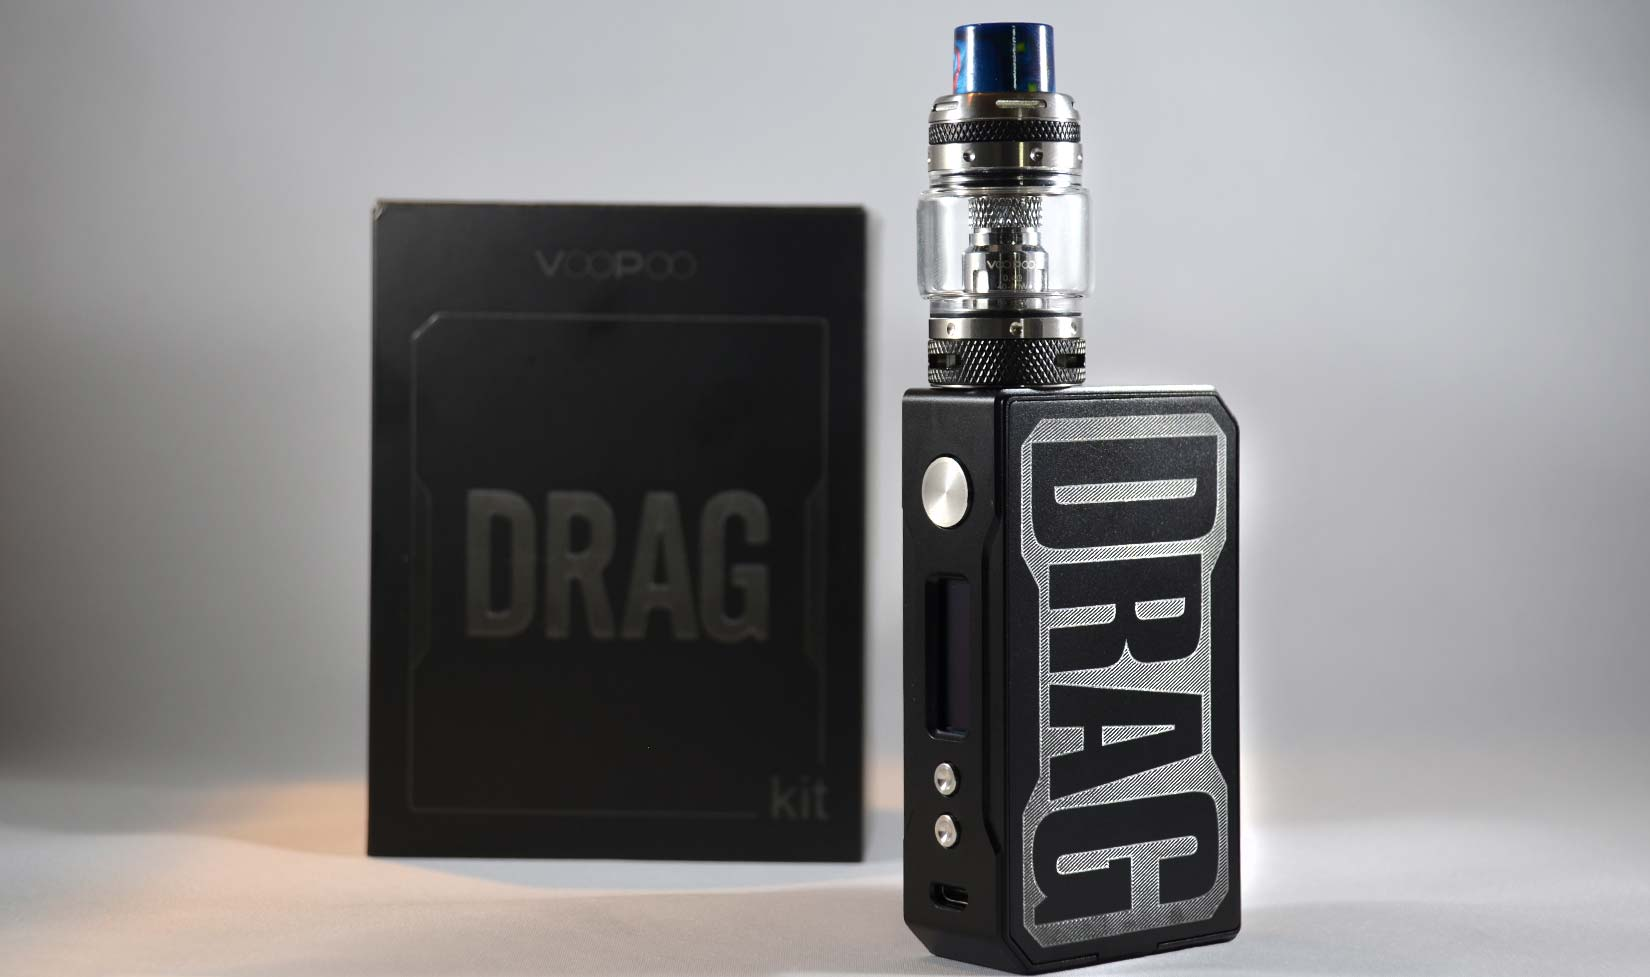 How to Use VOOPOO Drag Vape Kit | User Manual